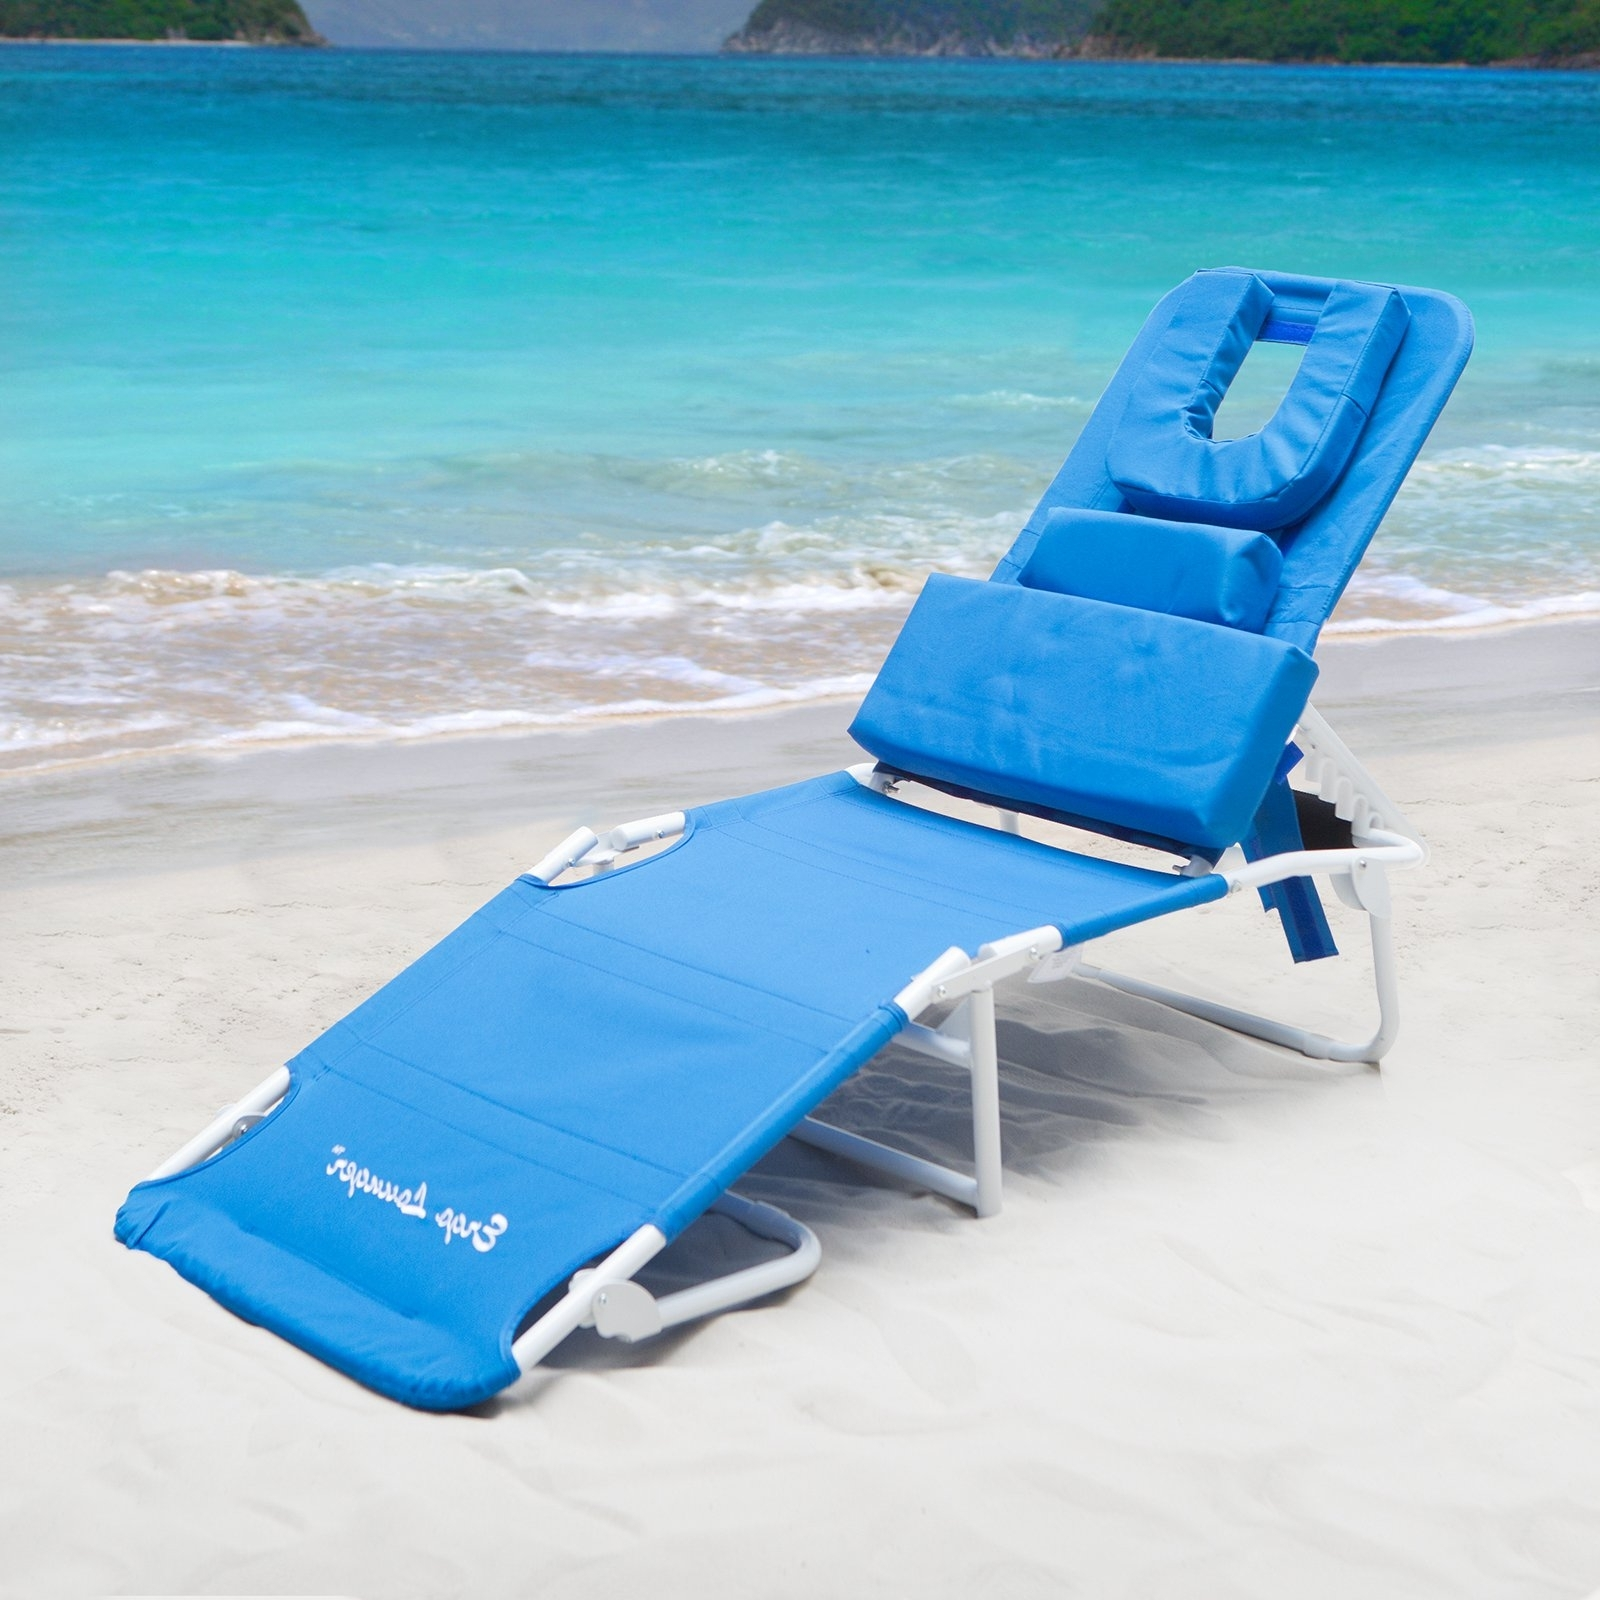 Chaise Lounge Beach Chairs Within Fashionable Modern Beach Chaise Lounge Chairs Best House Design : Design Beach (View 12 of 15)